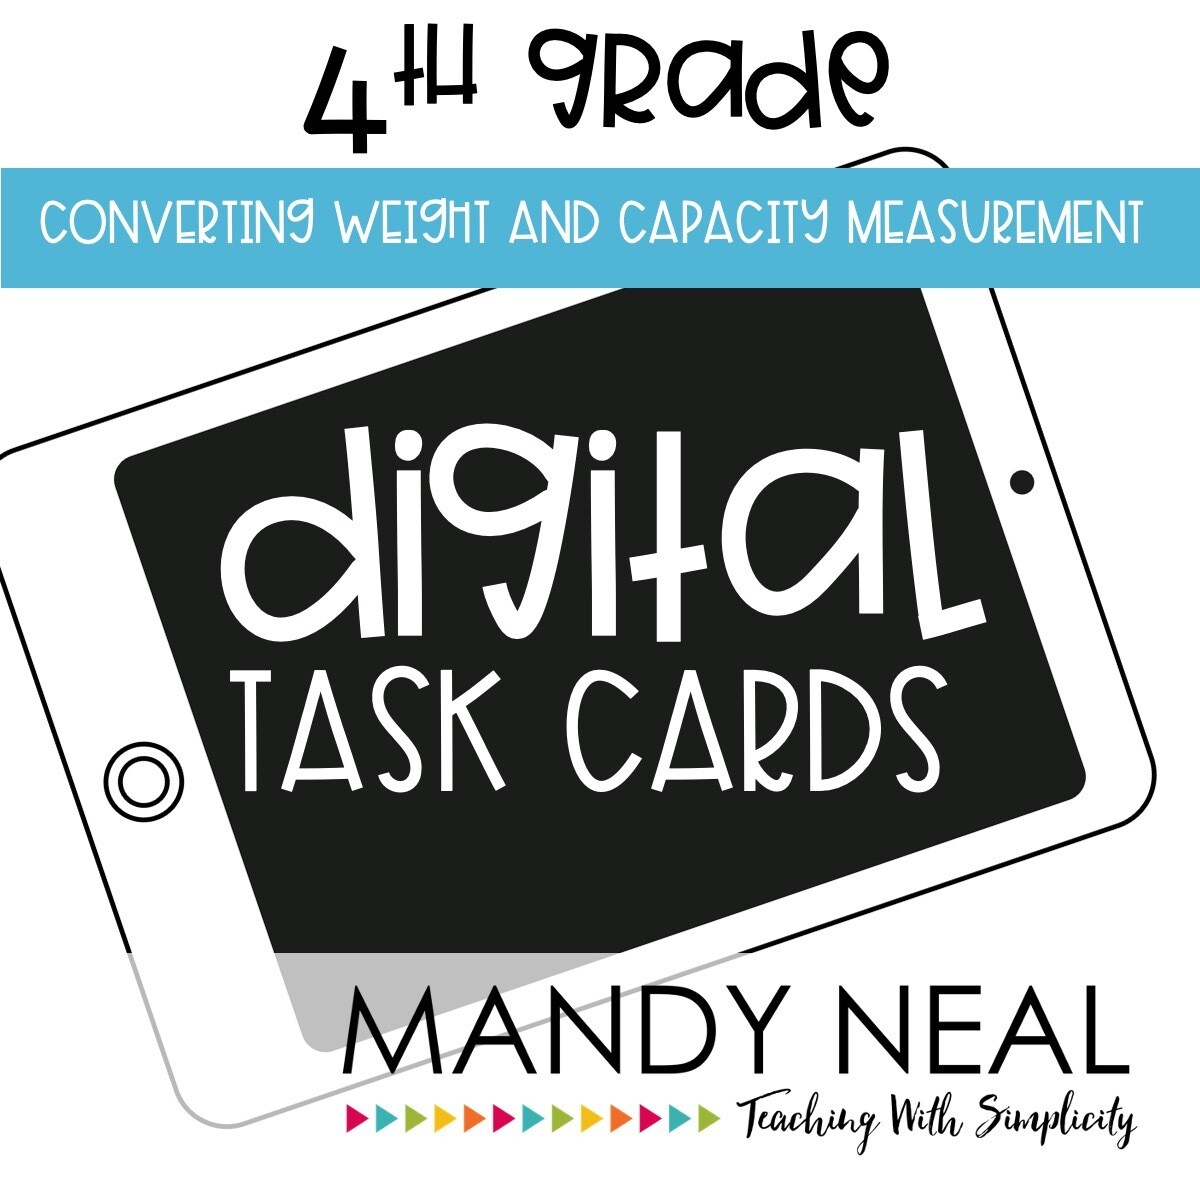 Fourth Grade Digital Math Task Cards ~ Converting Weight & Capacity Measurements